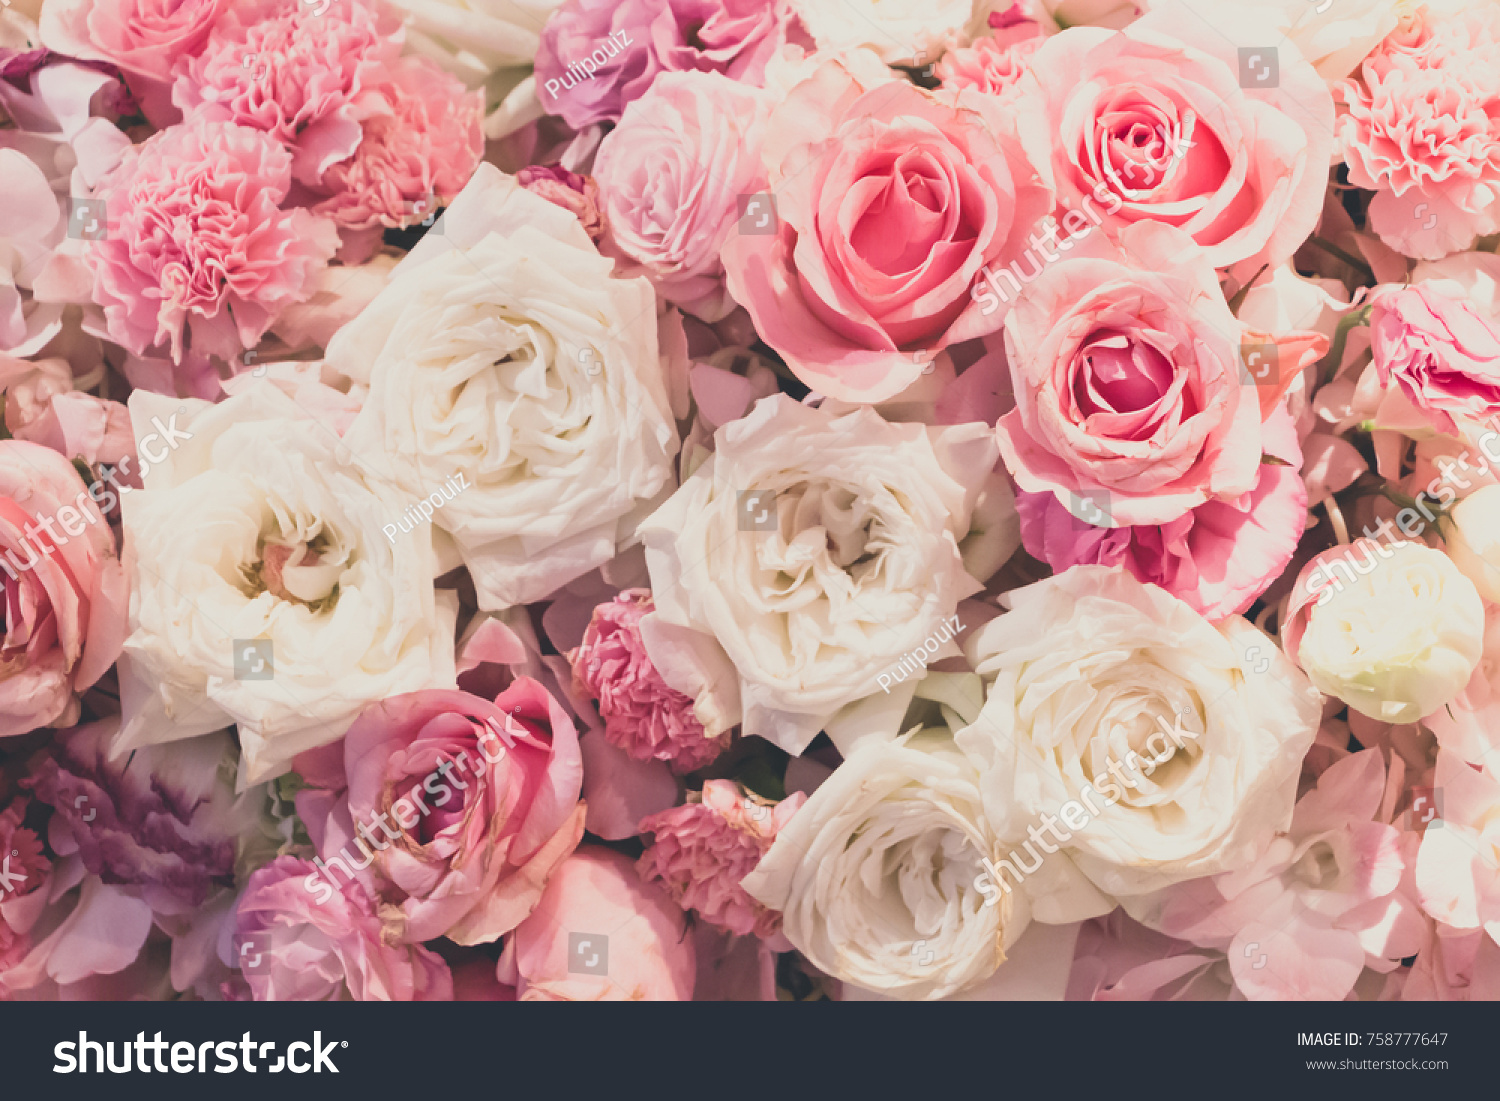 Natural Pink White Roses Pink Flowers Stock Photo Royalty Free